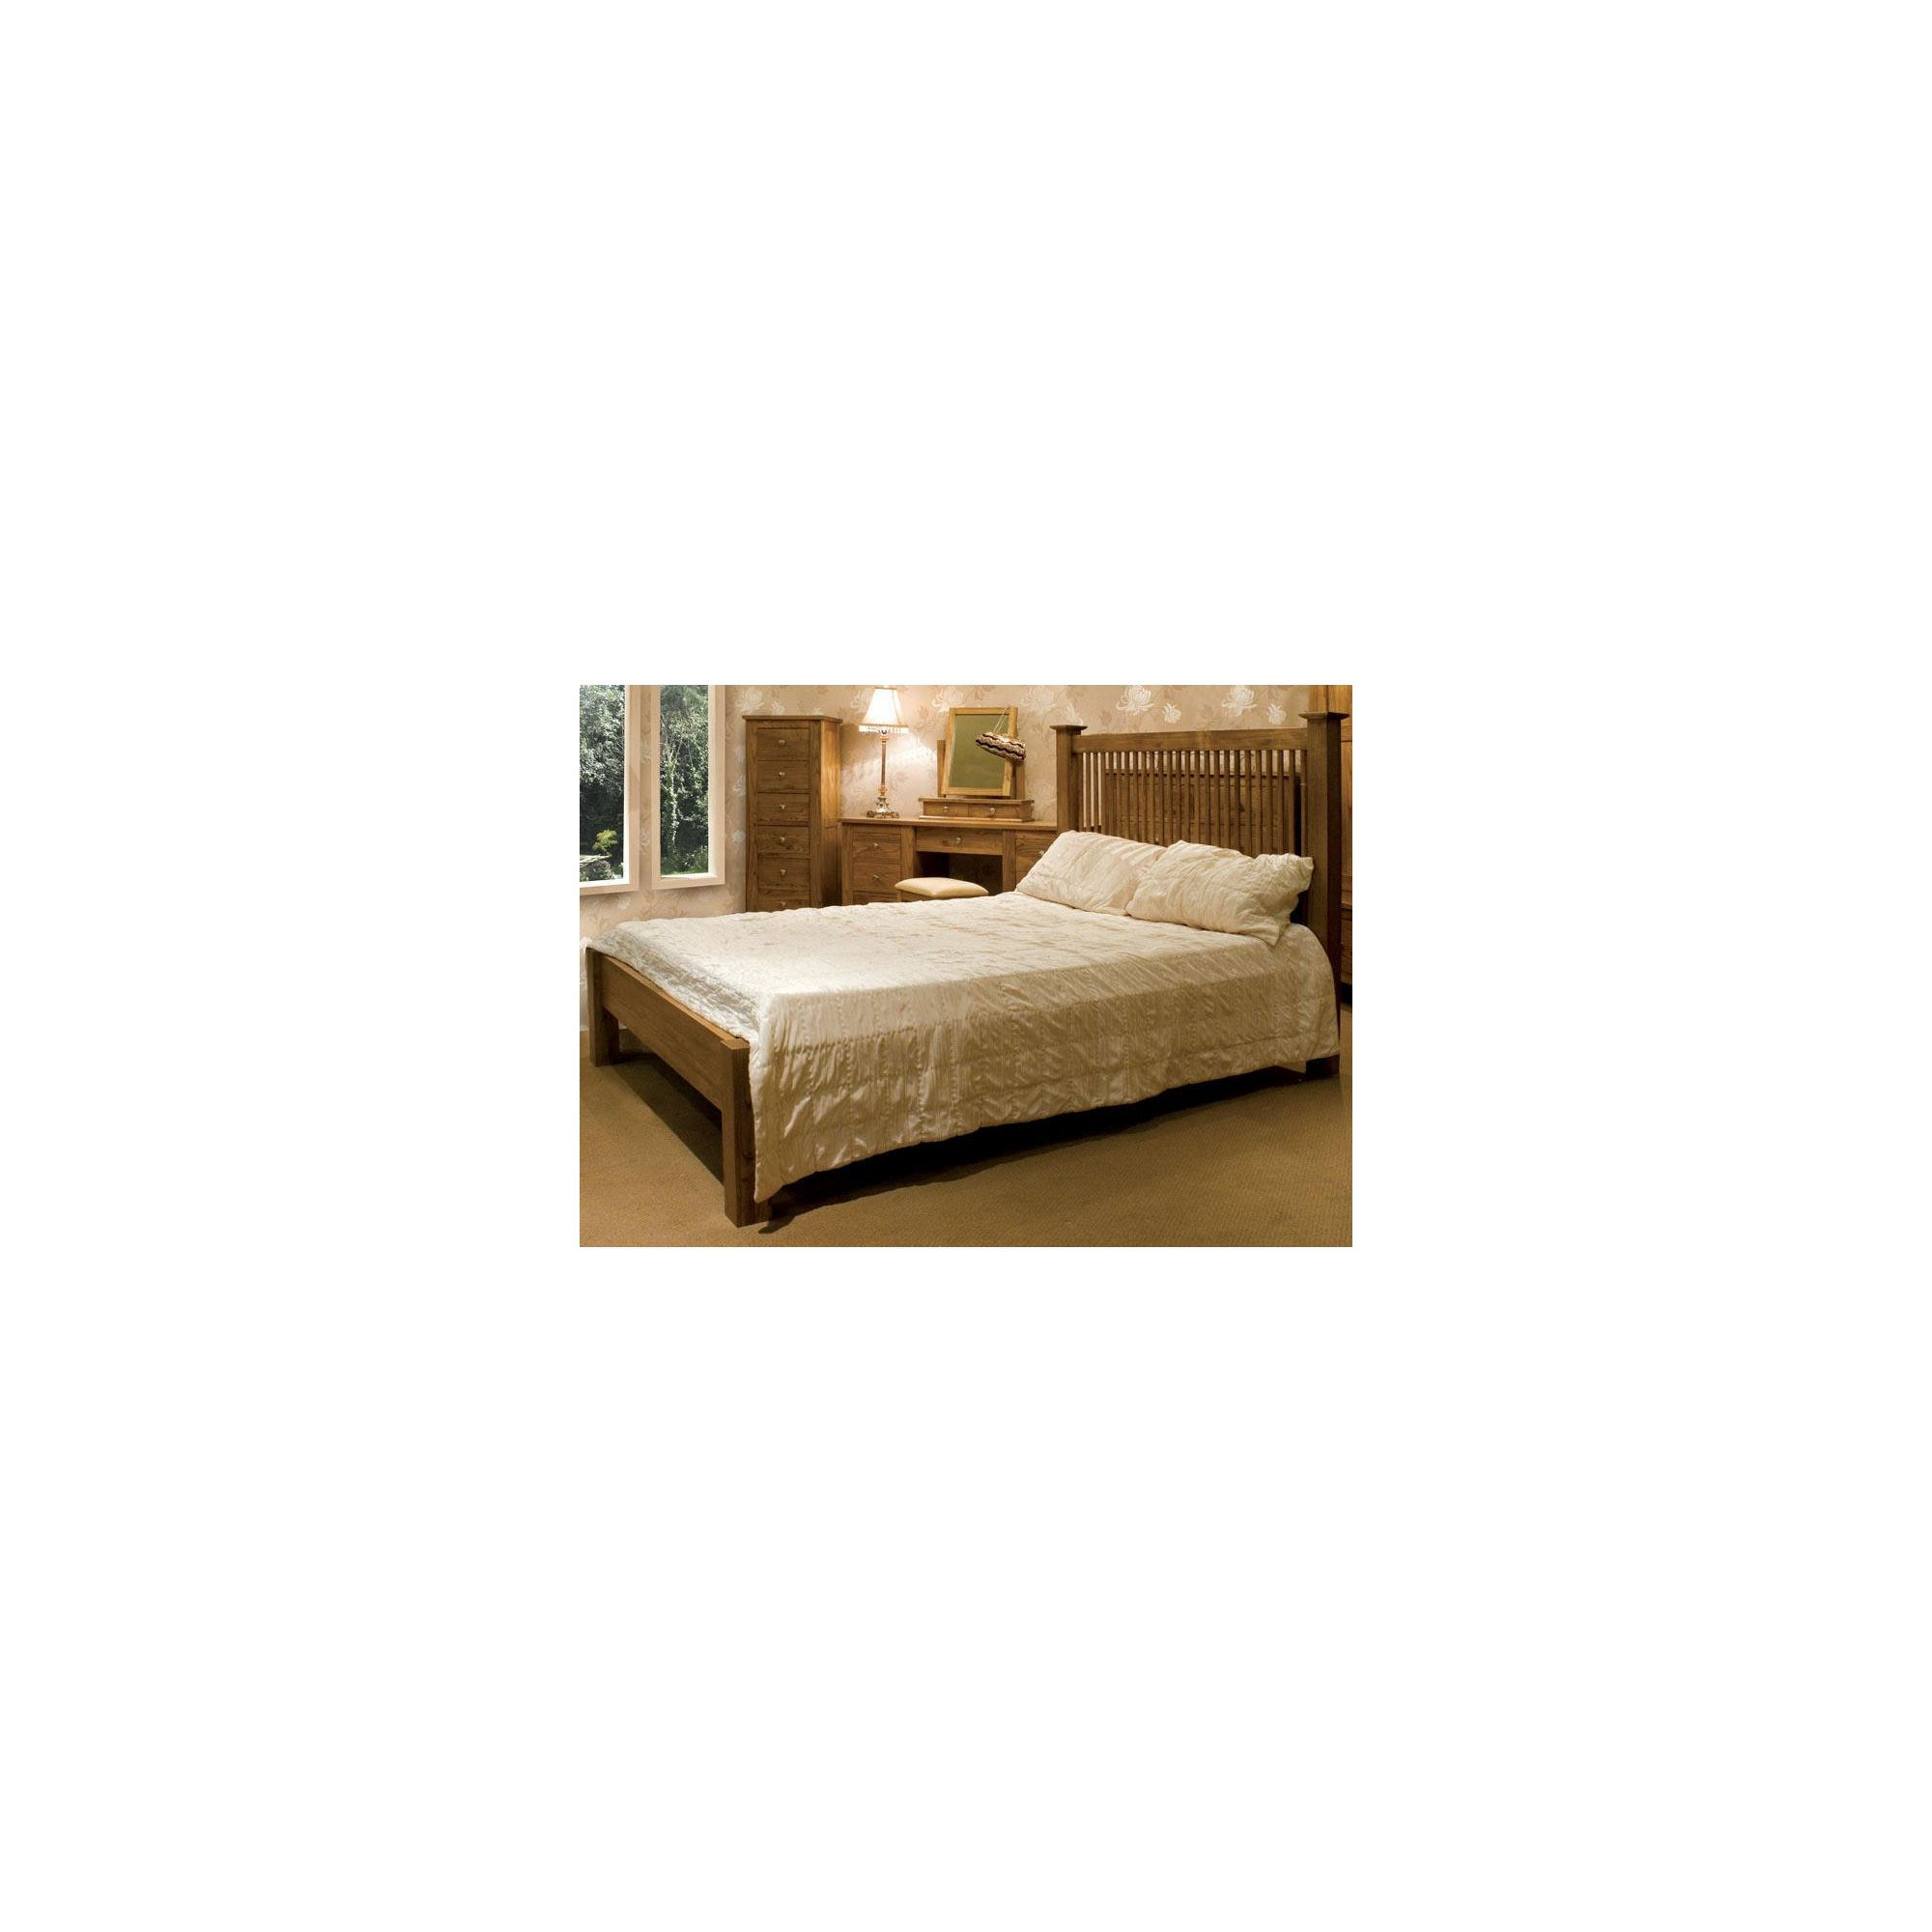 Alterton Furniture Madison Bed - King at Tesco Direct